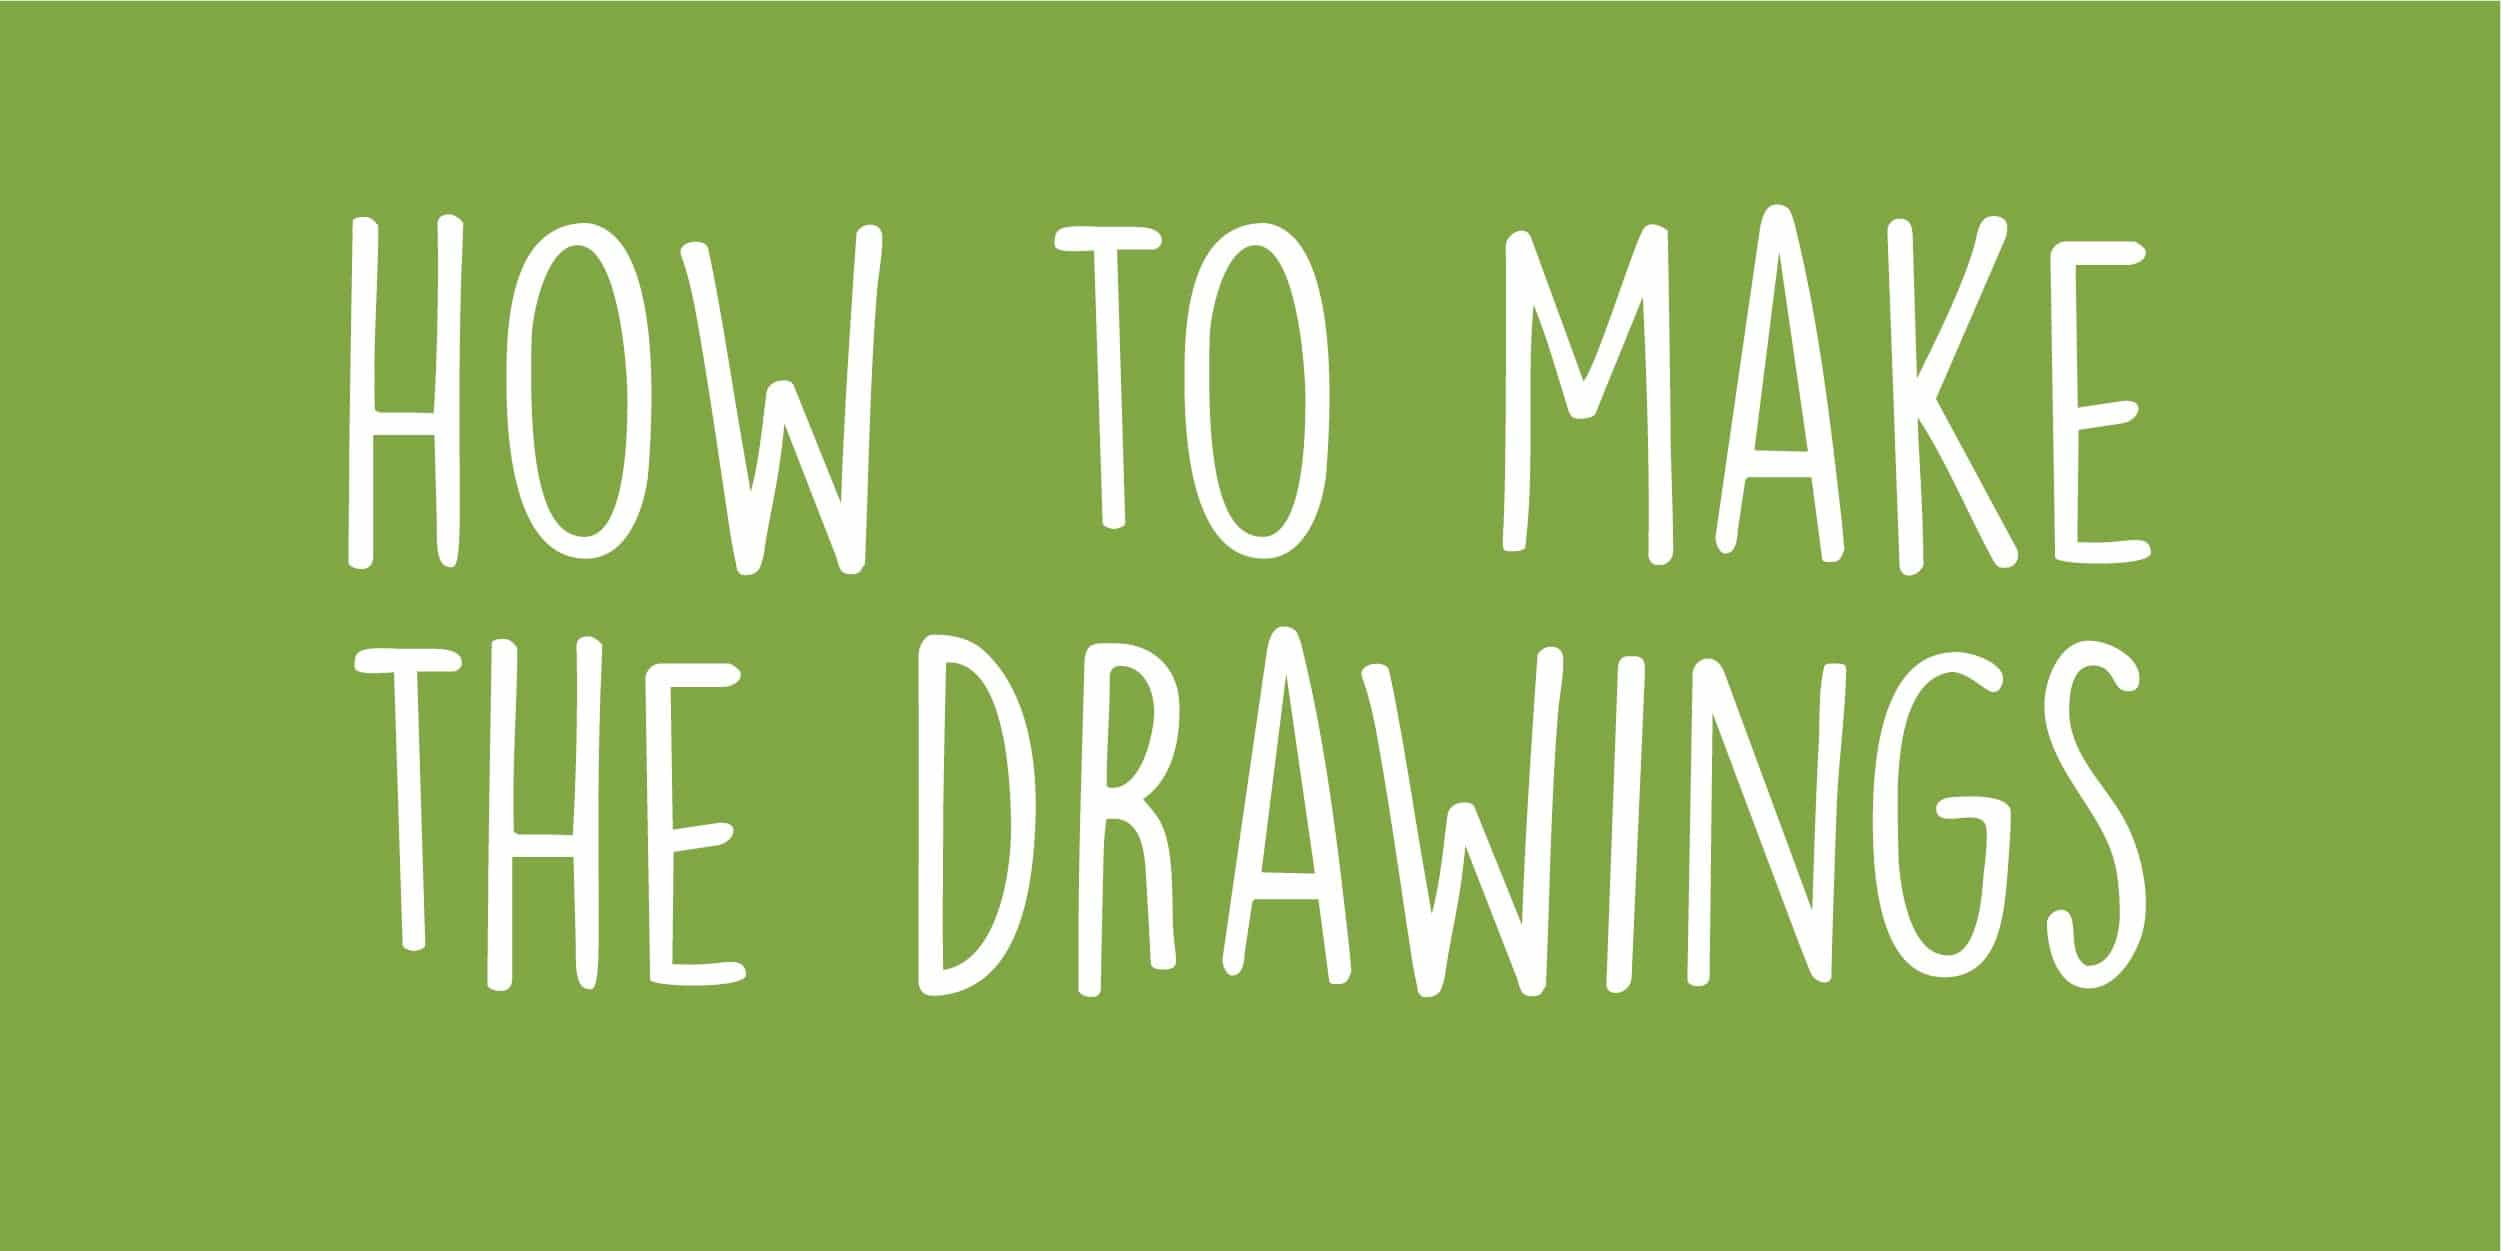 How to make the drawings